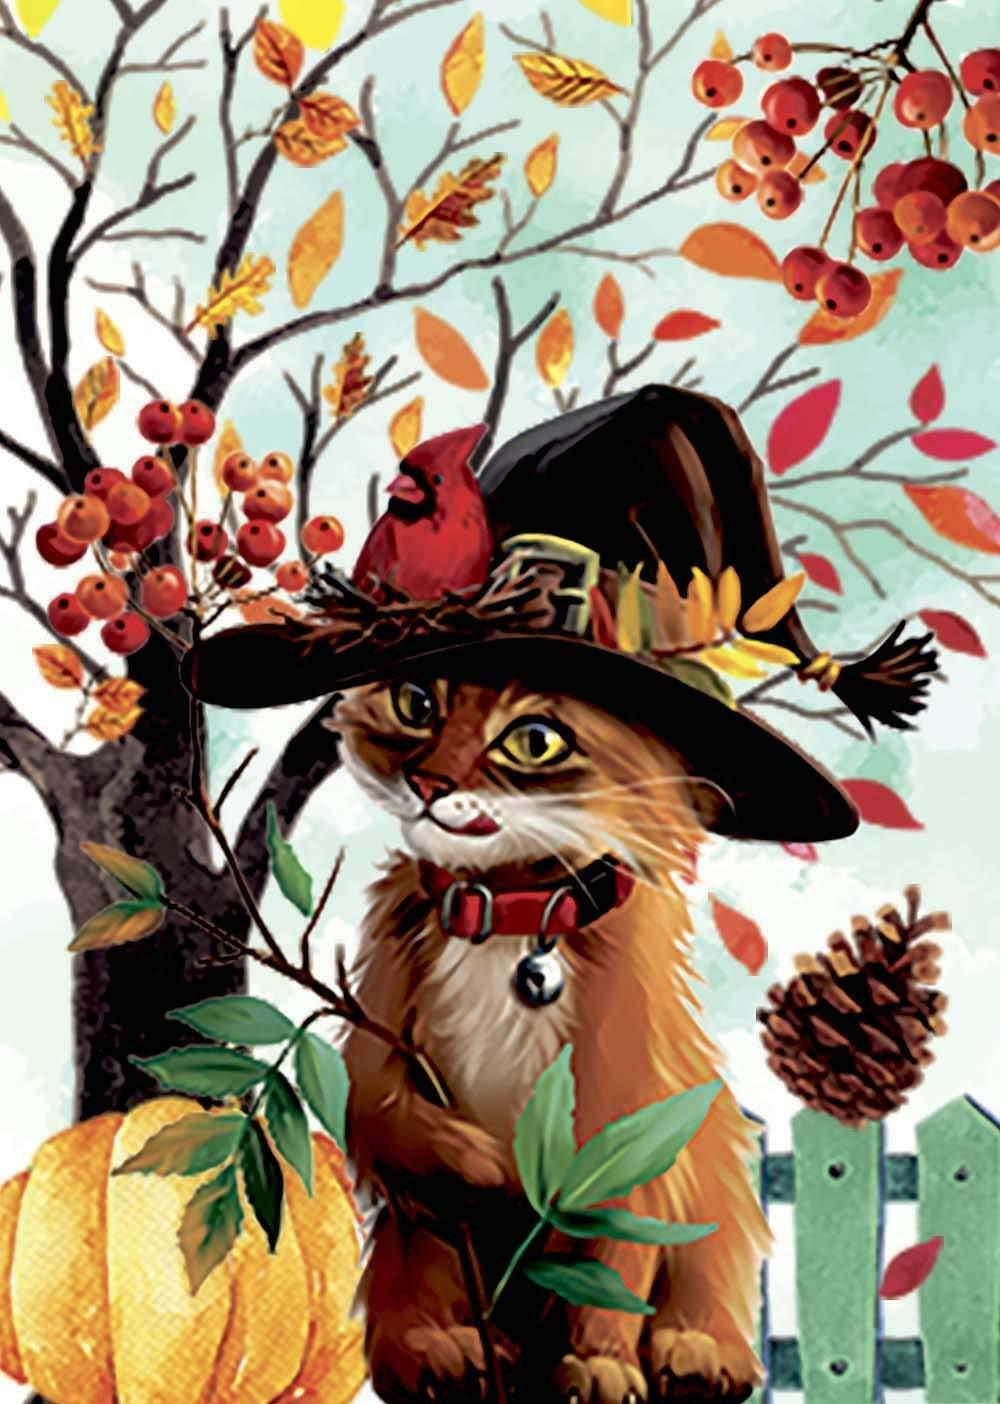 Morigins Fall Leaves Yard Decorative Autumn Bird Wizard Cat